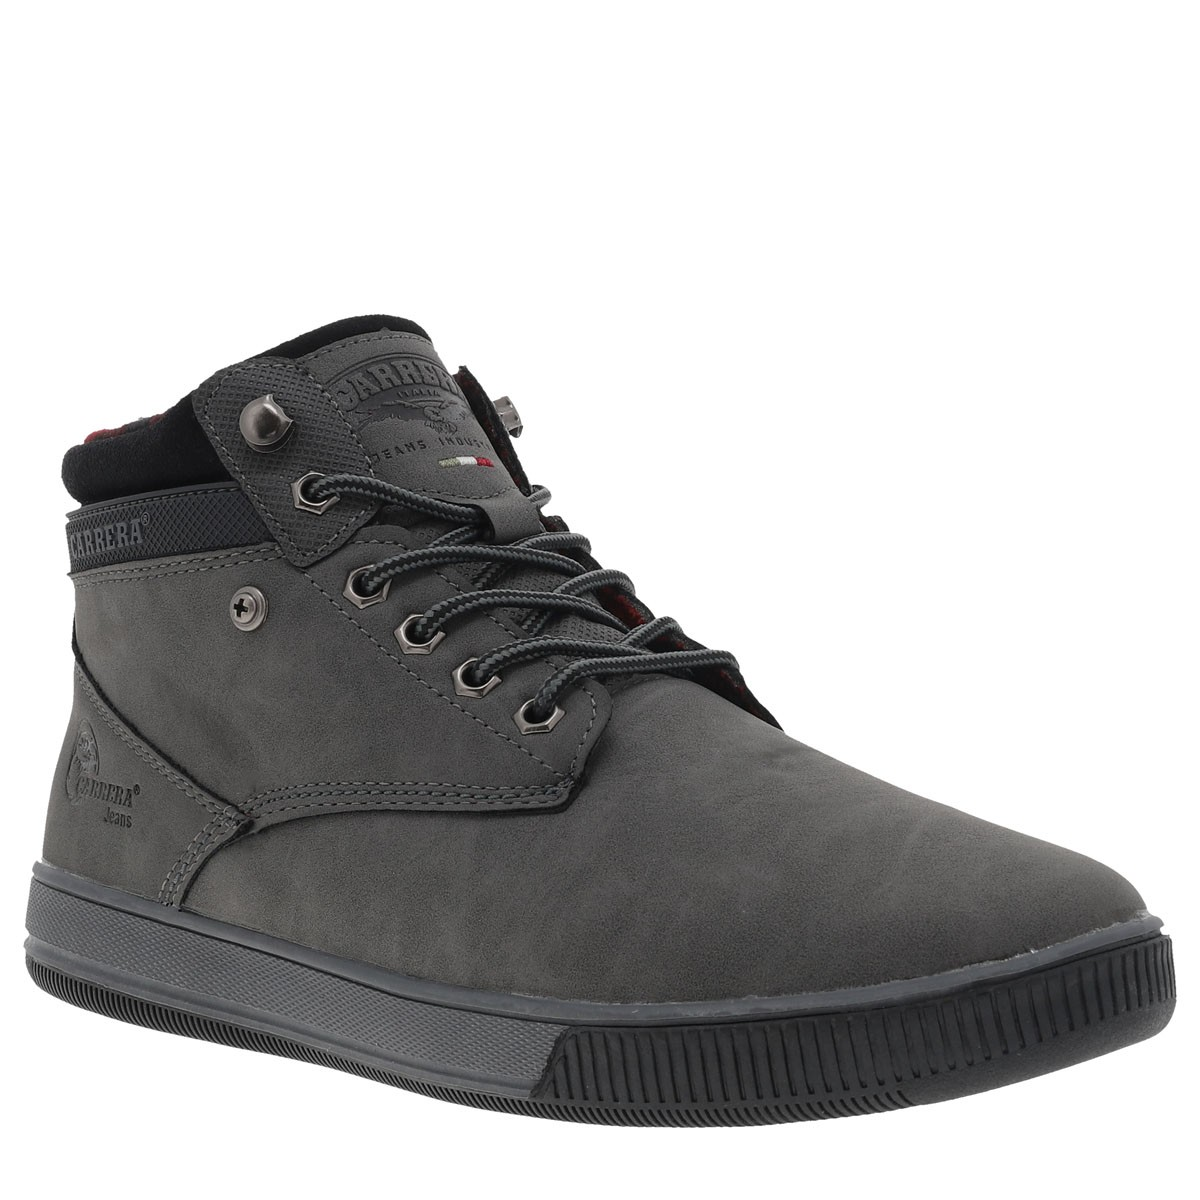 b315c82a44cd Boots Ronnie homme gris Carrera- CCV Mode